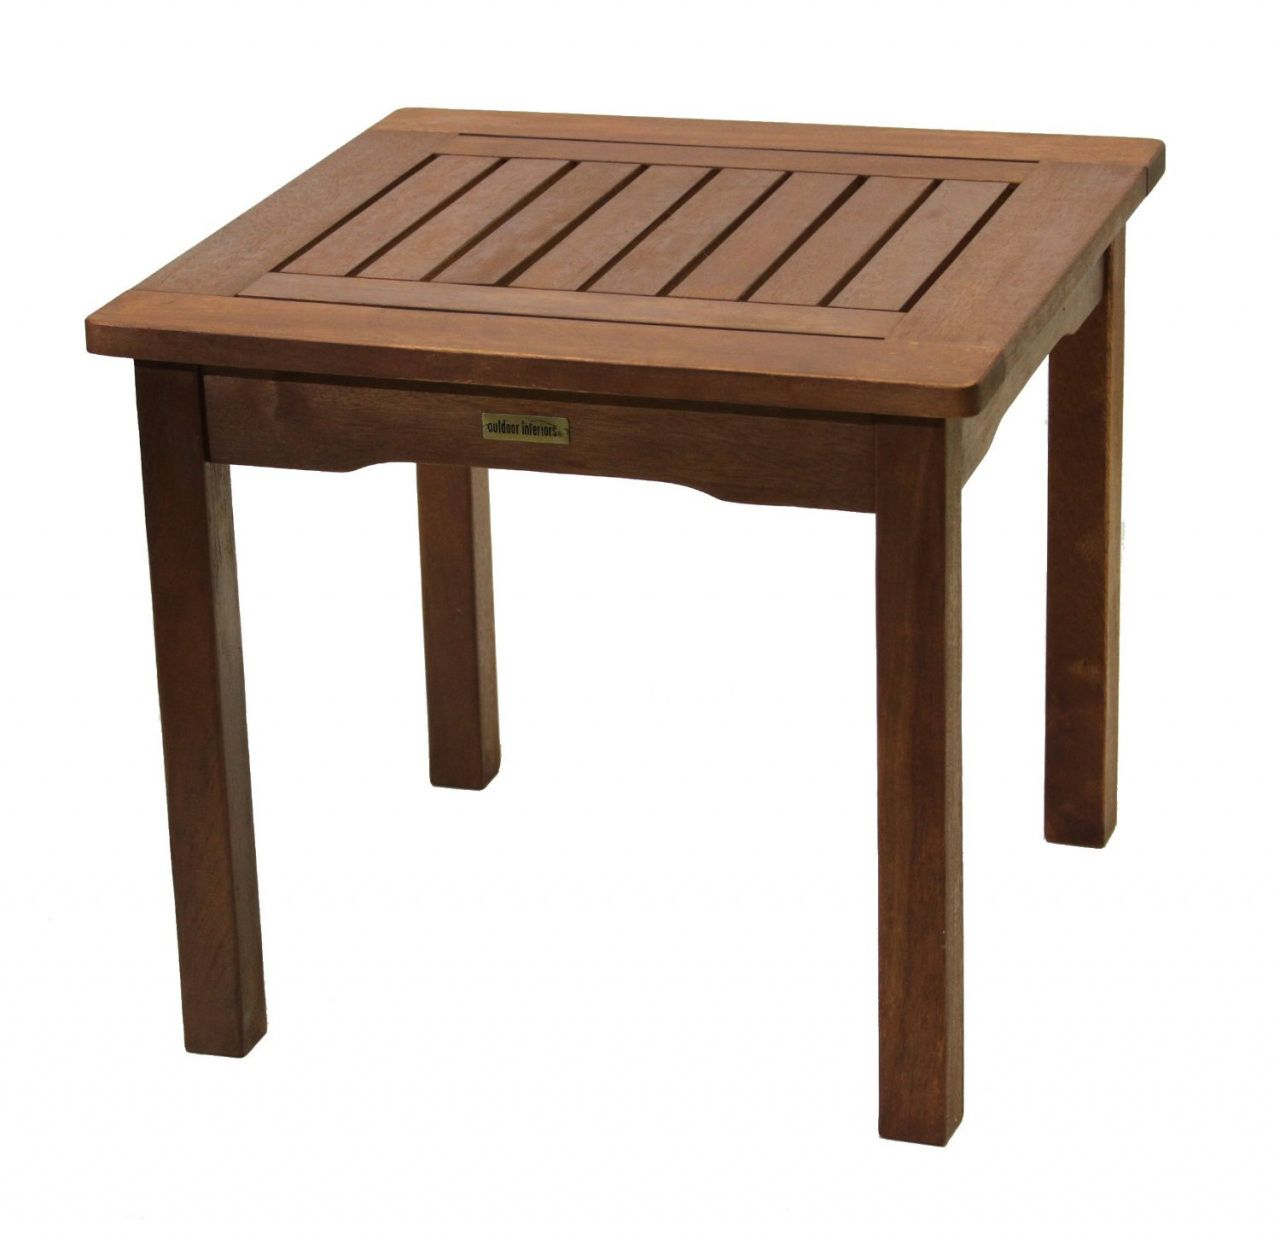 50 Small Outdoor Tables Luxury Modern Furniture Check More At Http Www Nikkitsfun Com Small Outdoo Wooden Garden Table Outdoor End Tables Patio Side Table [ 1243 x 1280 Pixel ]